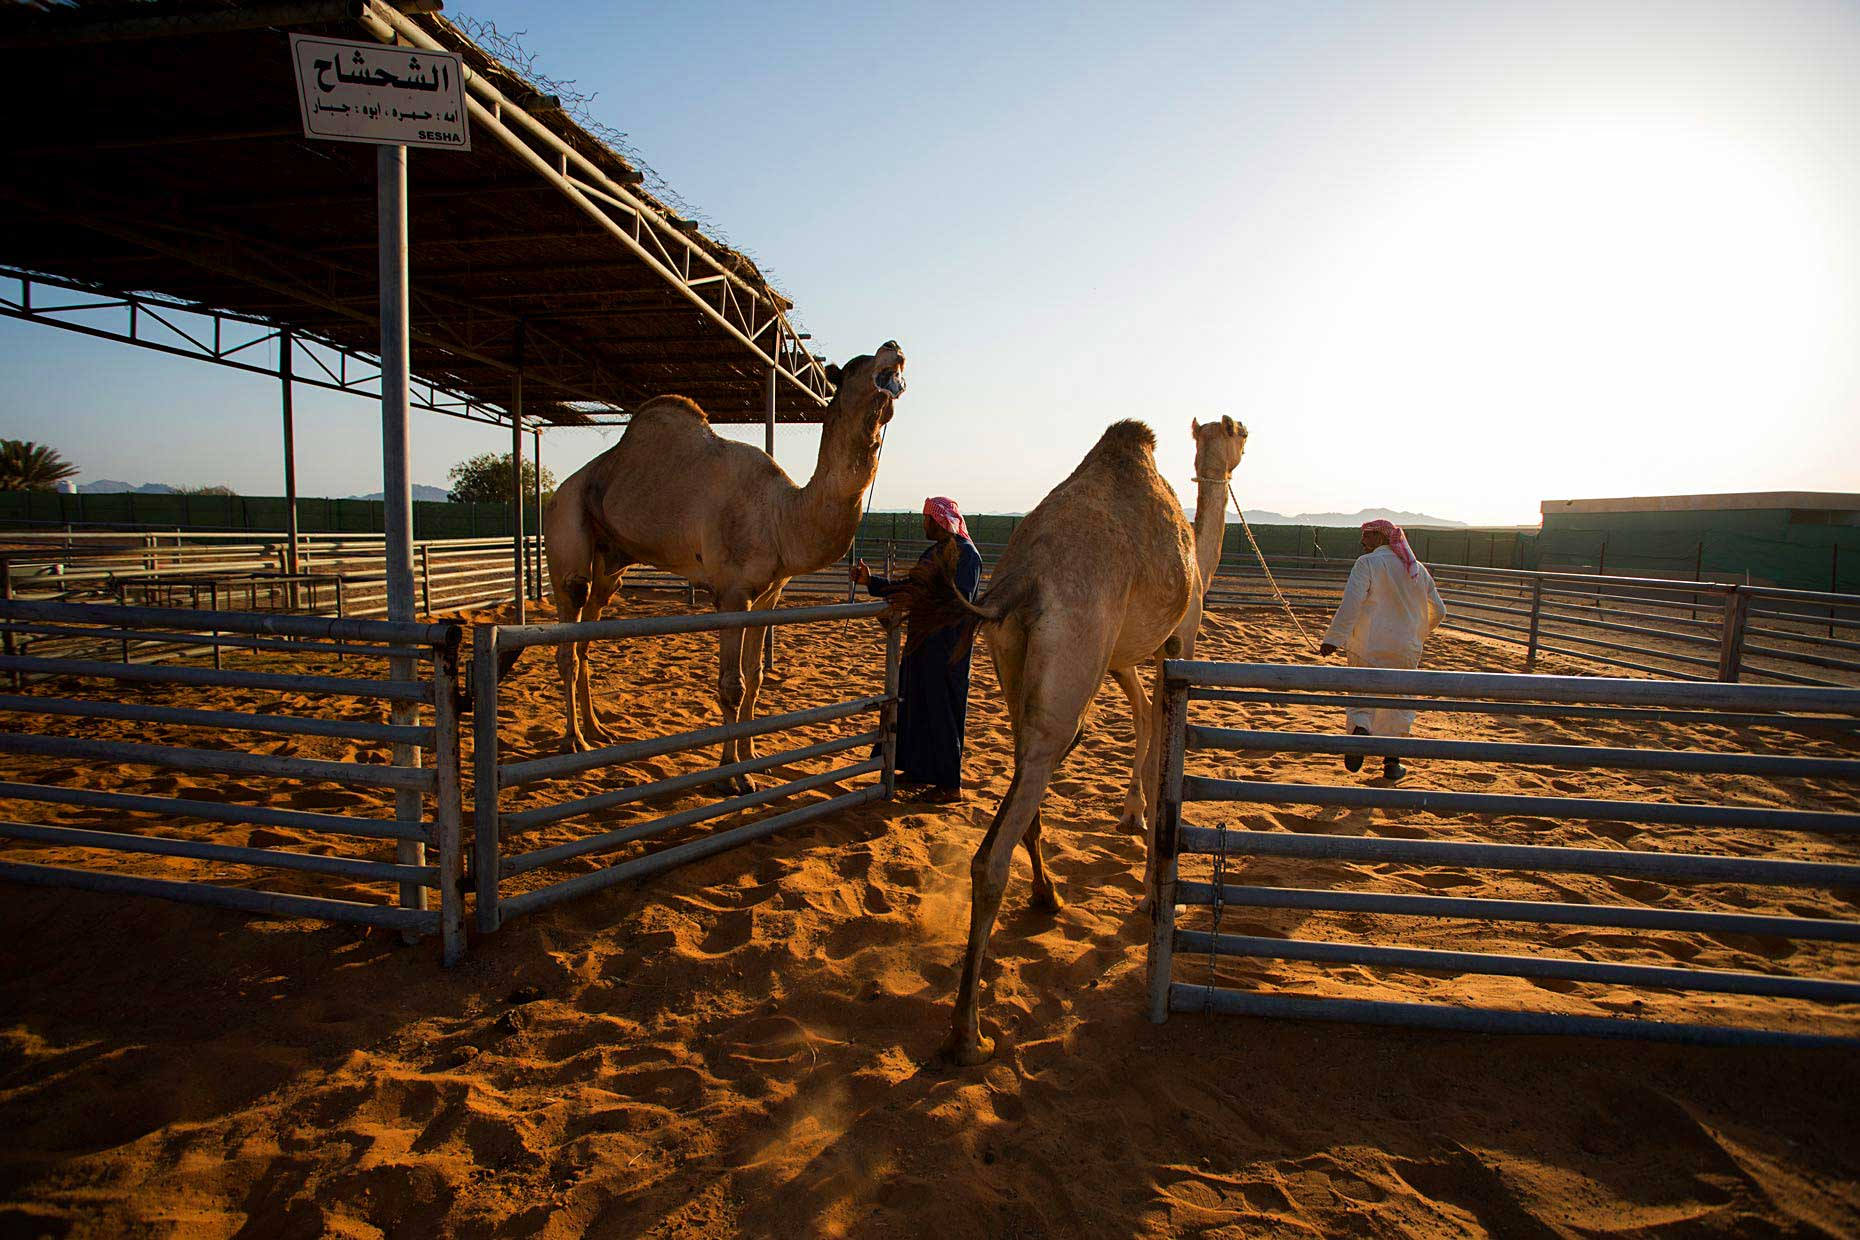 Wouter-Kingma-Web-Camel-Library-23